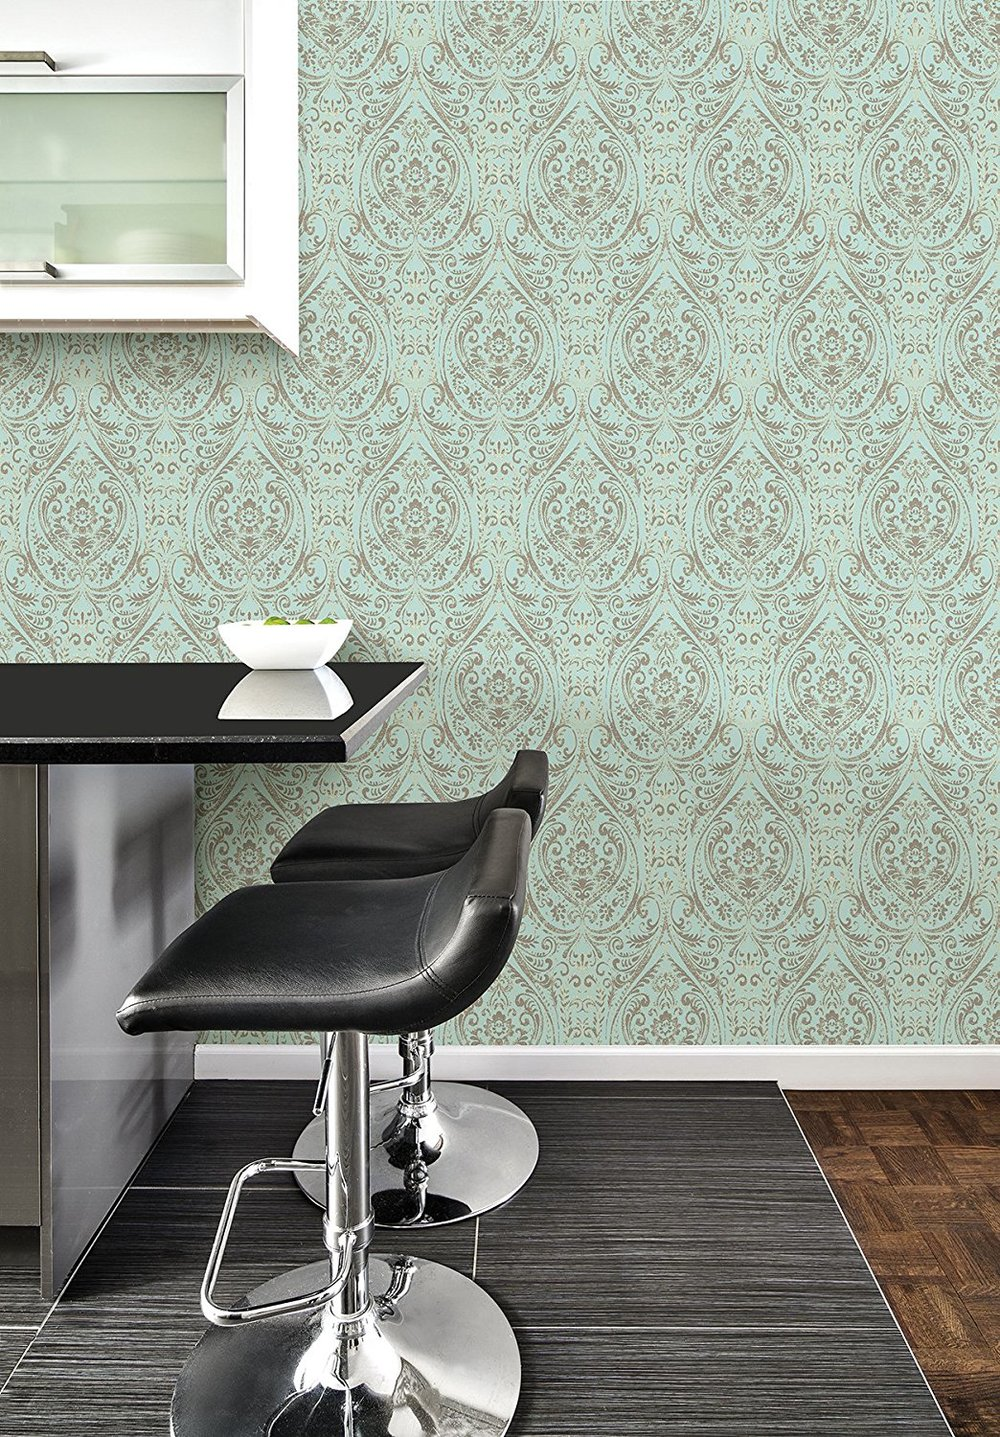 classic damask wallpaper design